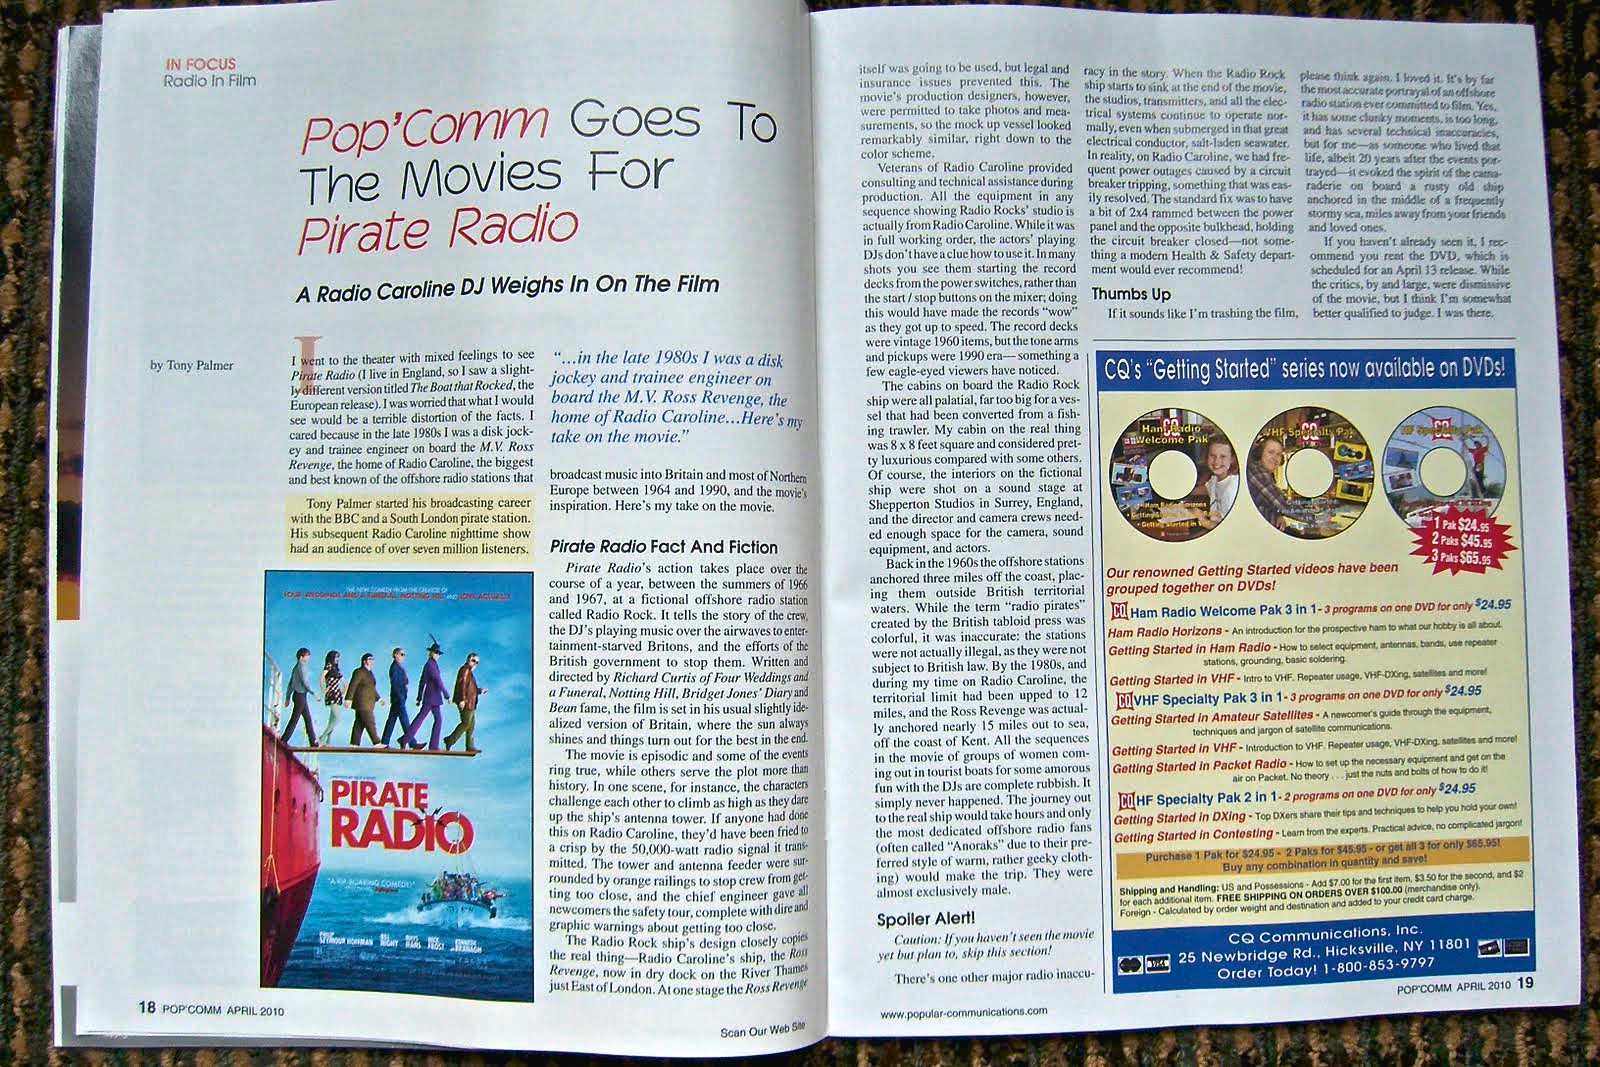 Pirate Radio article.jpg  961